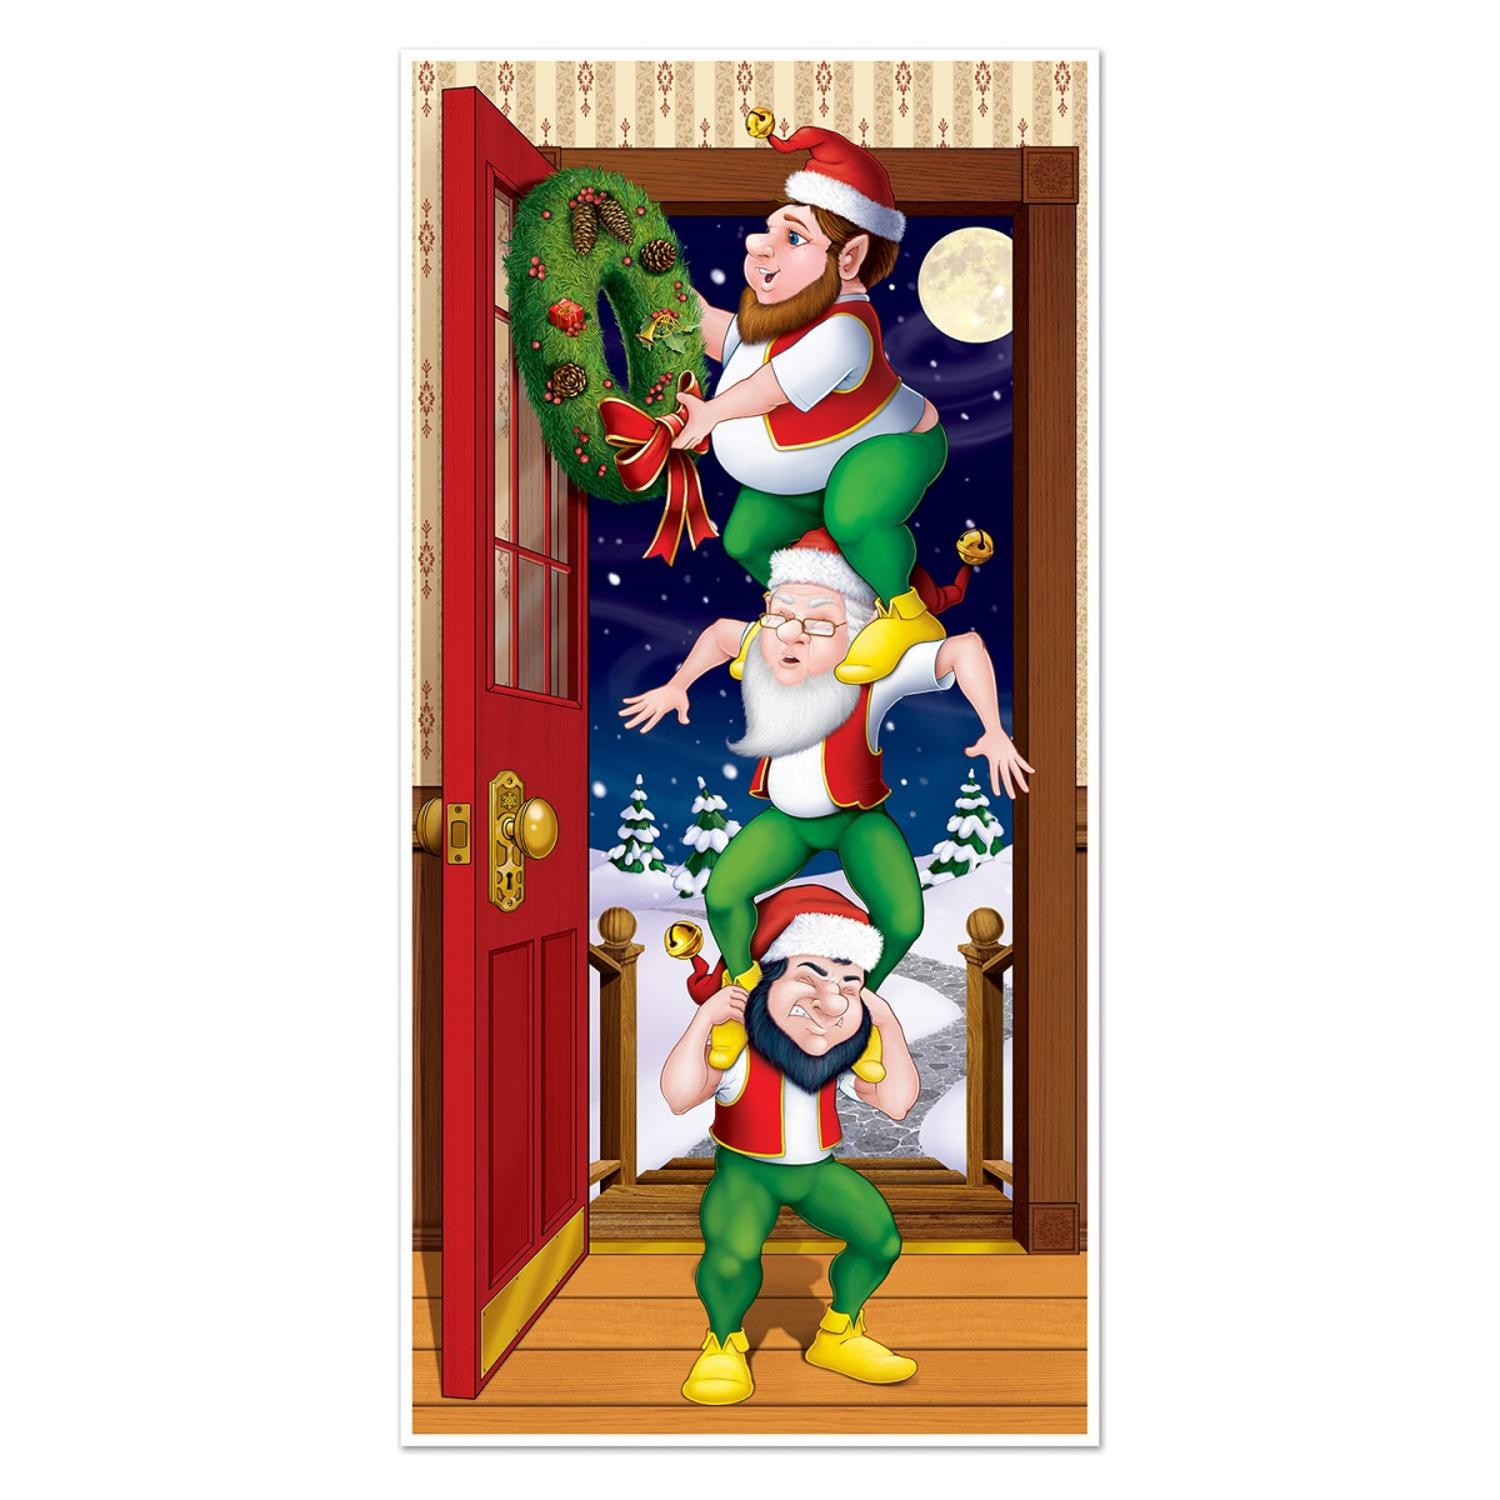 Club Pack of 12 Winter Wonderland Themed Christmas Elves Door Cover Party Decorations 5'